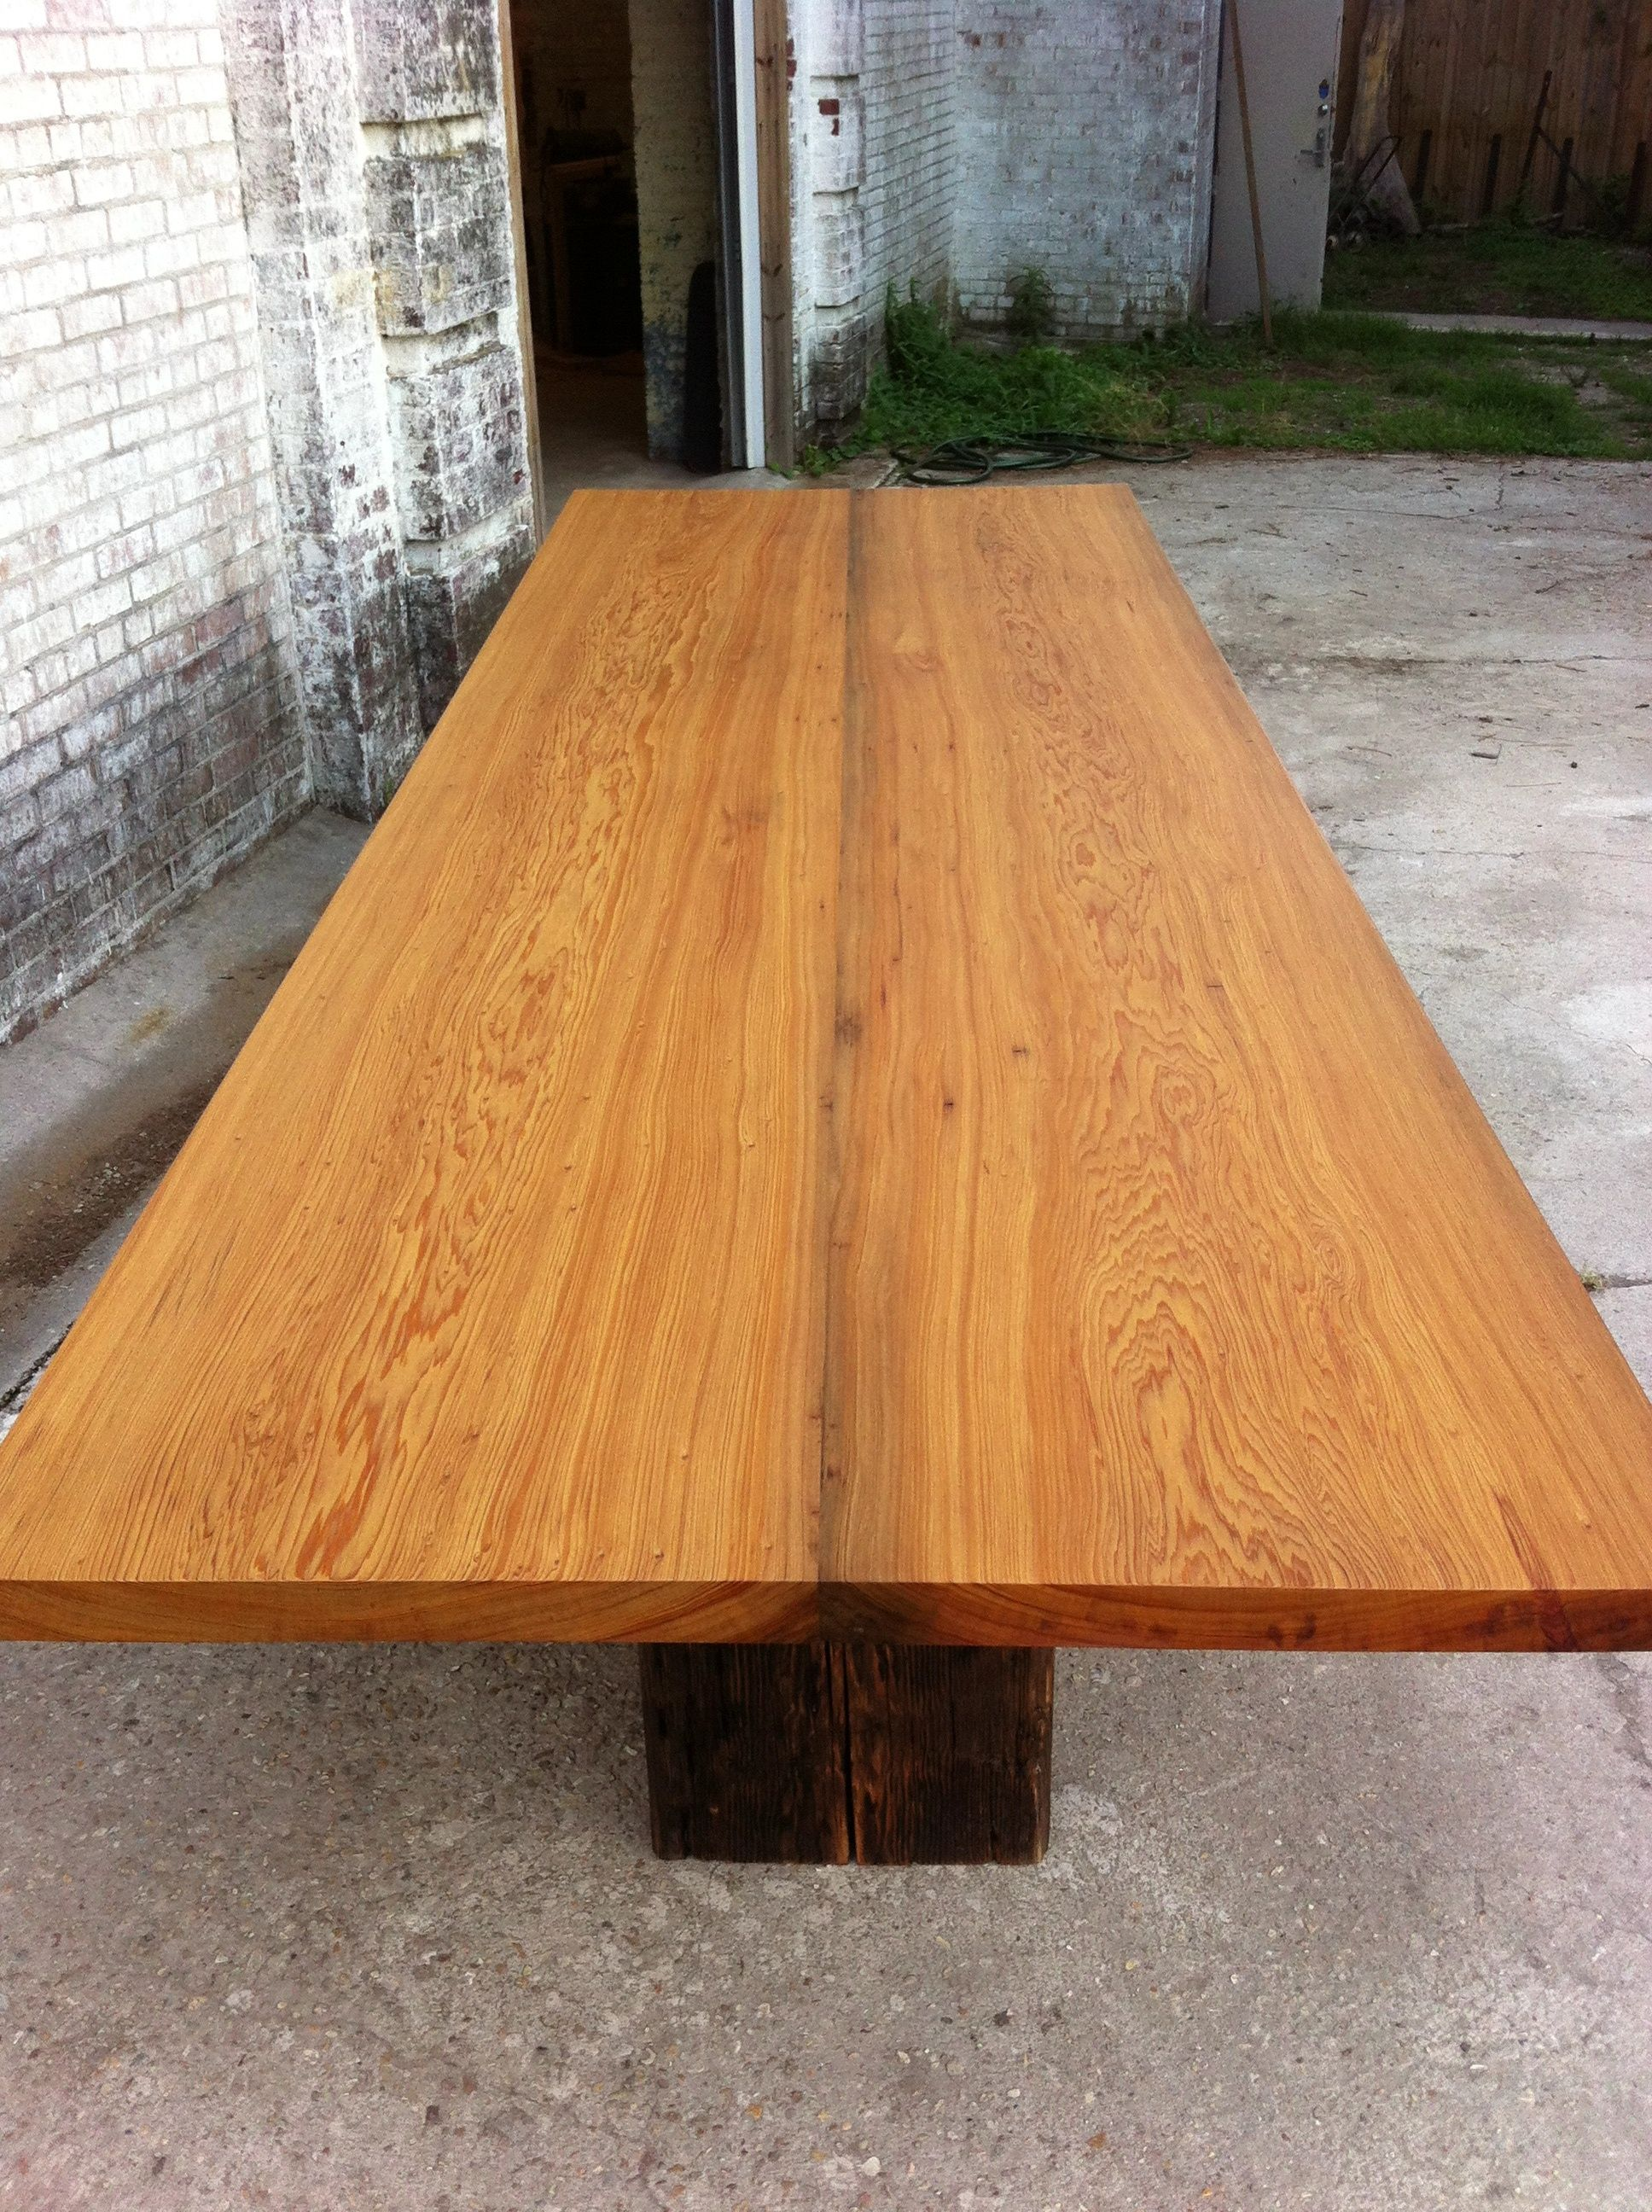 Sinker Cypress Slabs And Heart Pine Conference Table